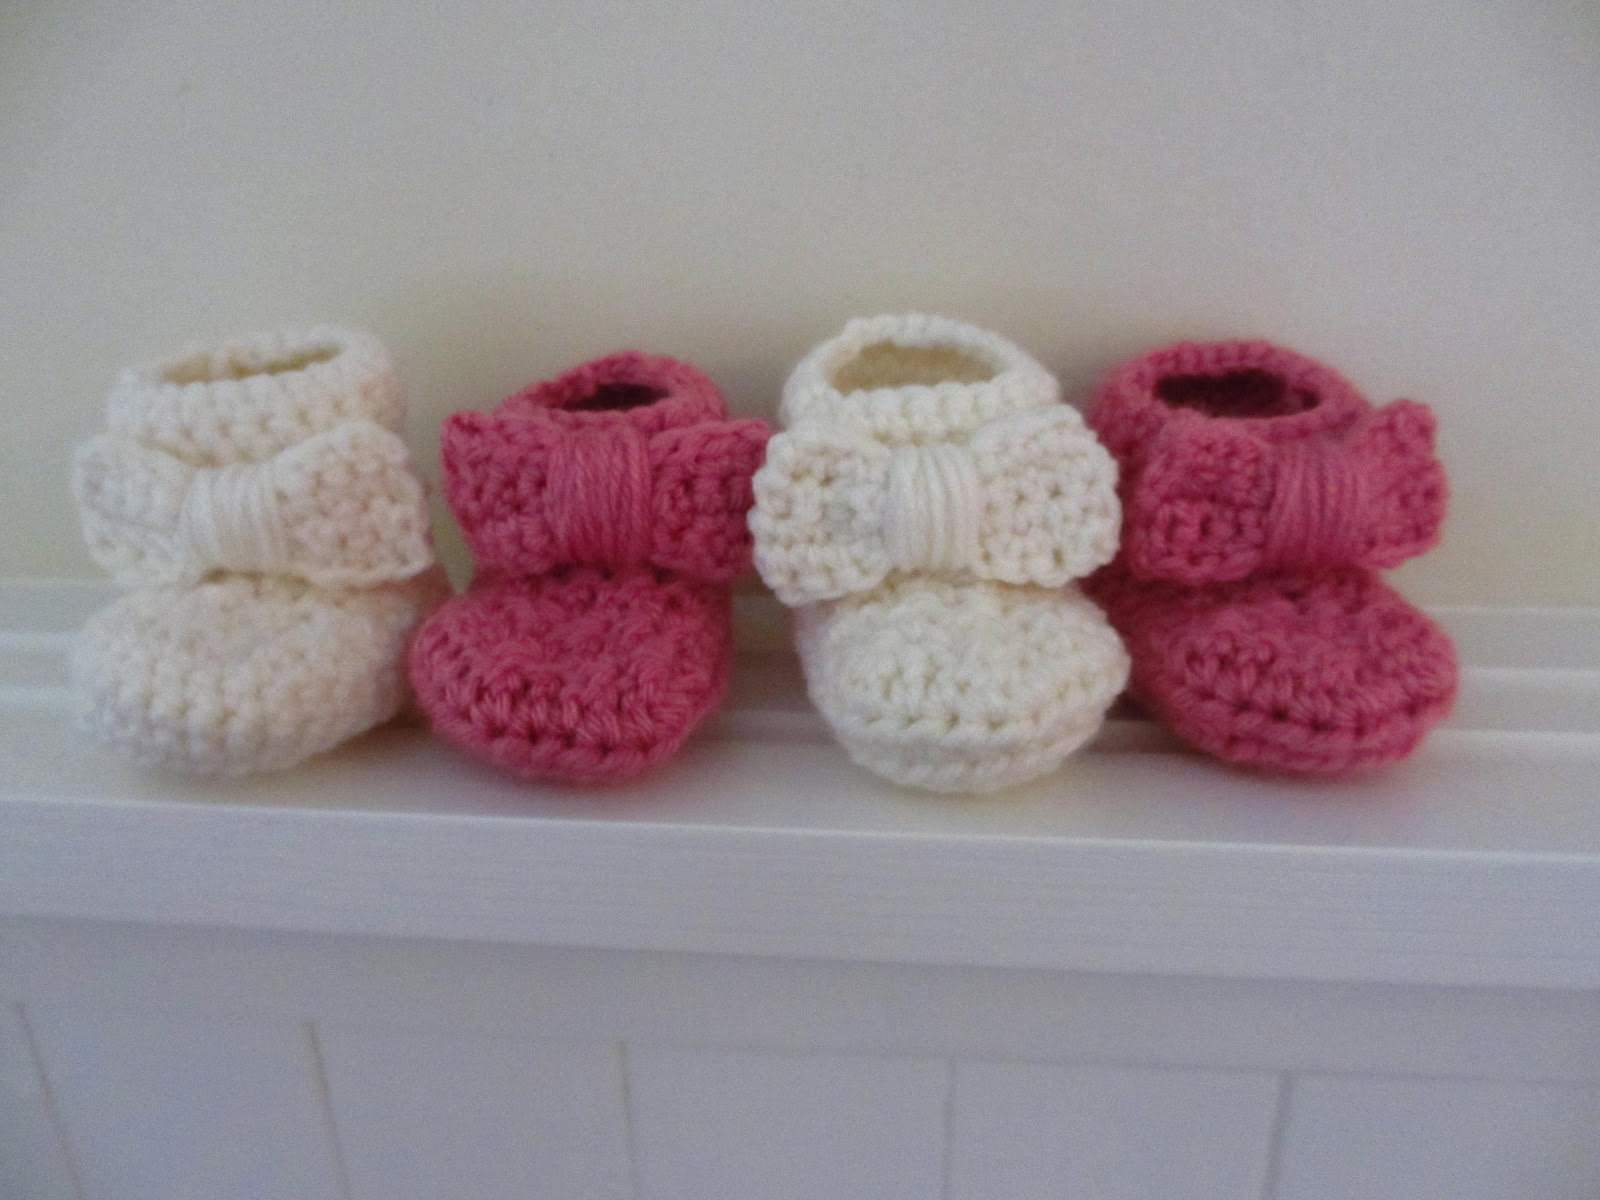 Crochet Baby Booties Pattern For Free : Jays Boutique Blog: FREE PATTERN: Bow Baby Booties